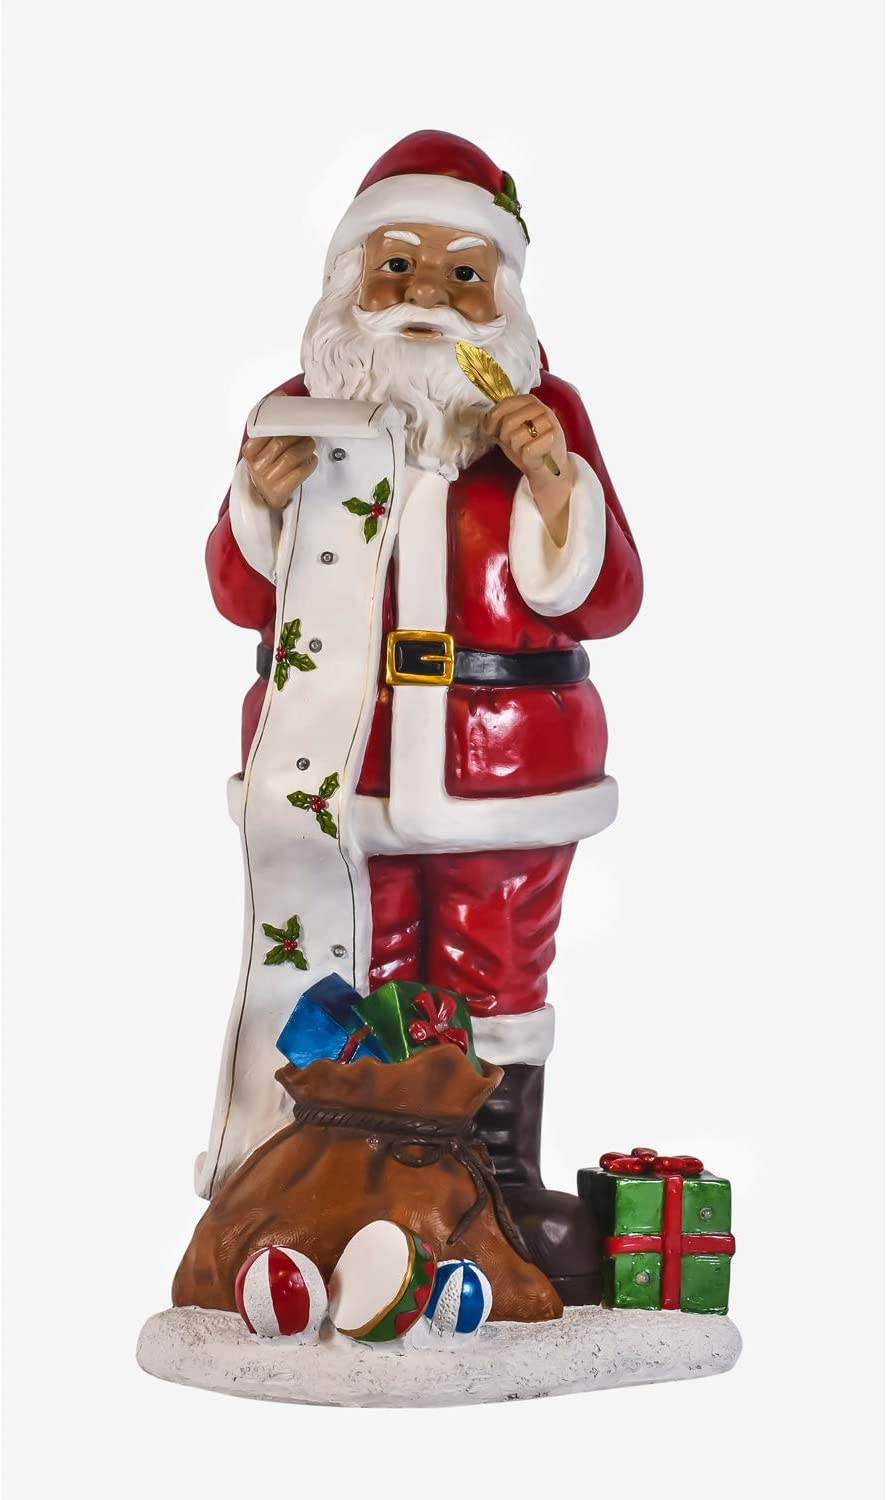 Evergreen Garden Beautiful Decorative Seasonal Solar Santa Claus Checking The List Statement Garden Statue - 28 x 15 x 55 Inches Fade and Weather Resistant Indoor/Outdoor Decoration